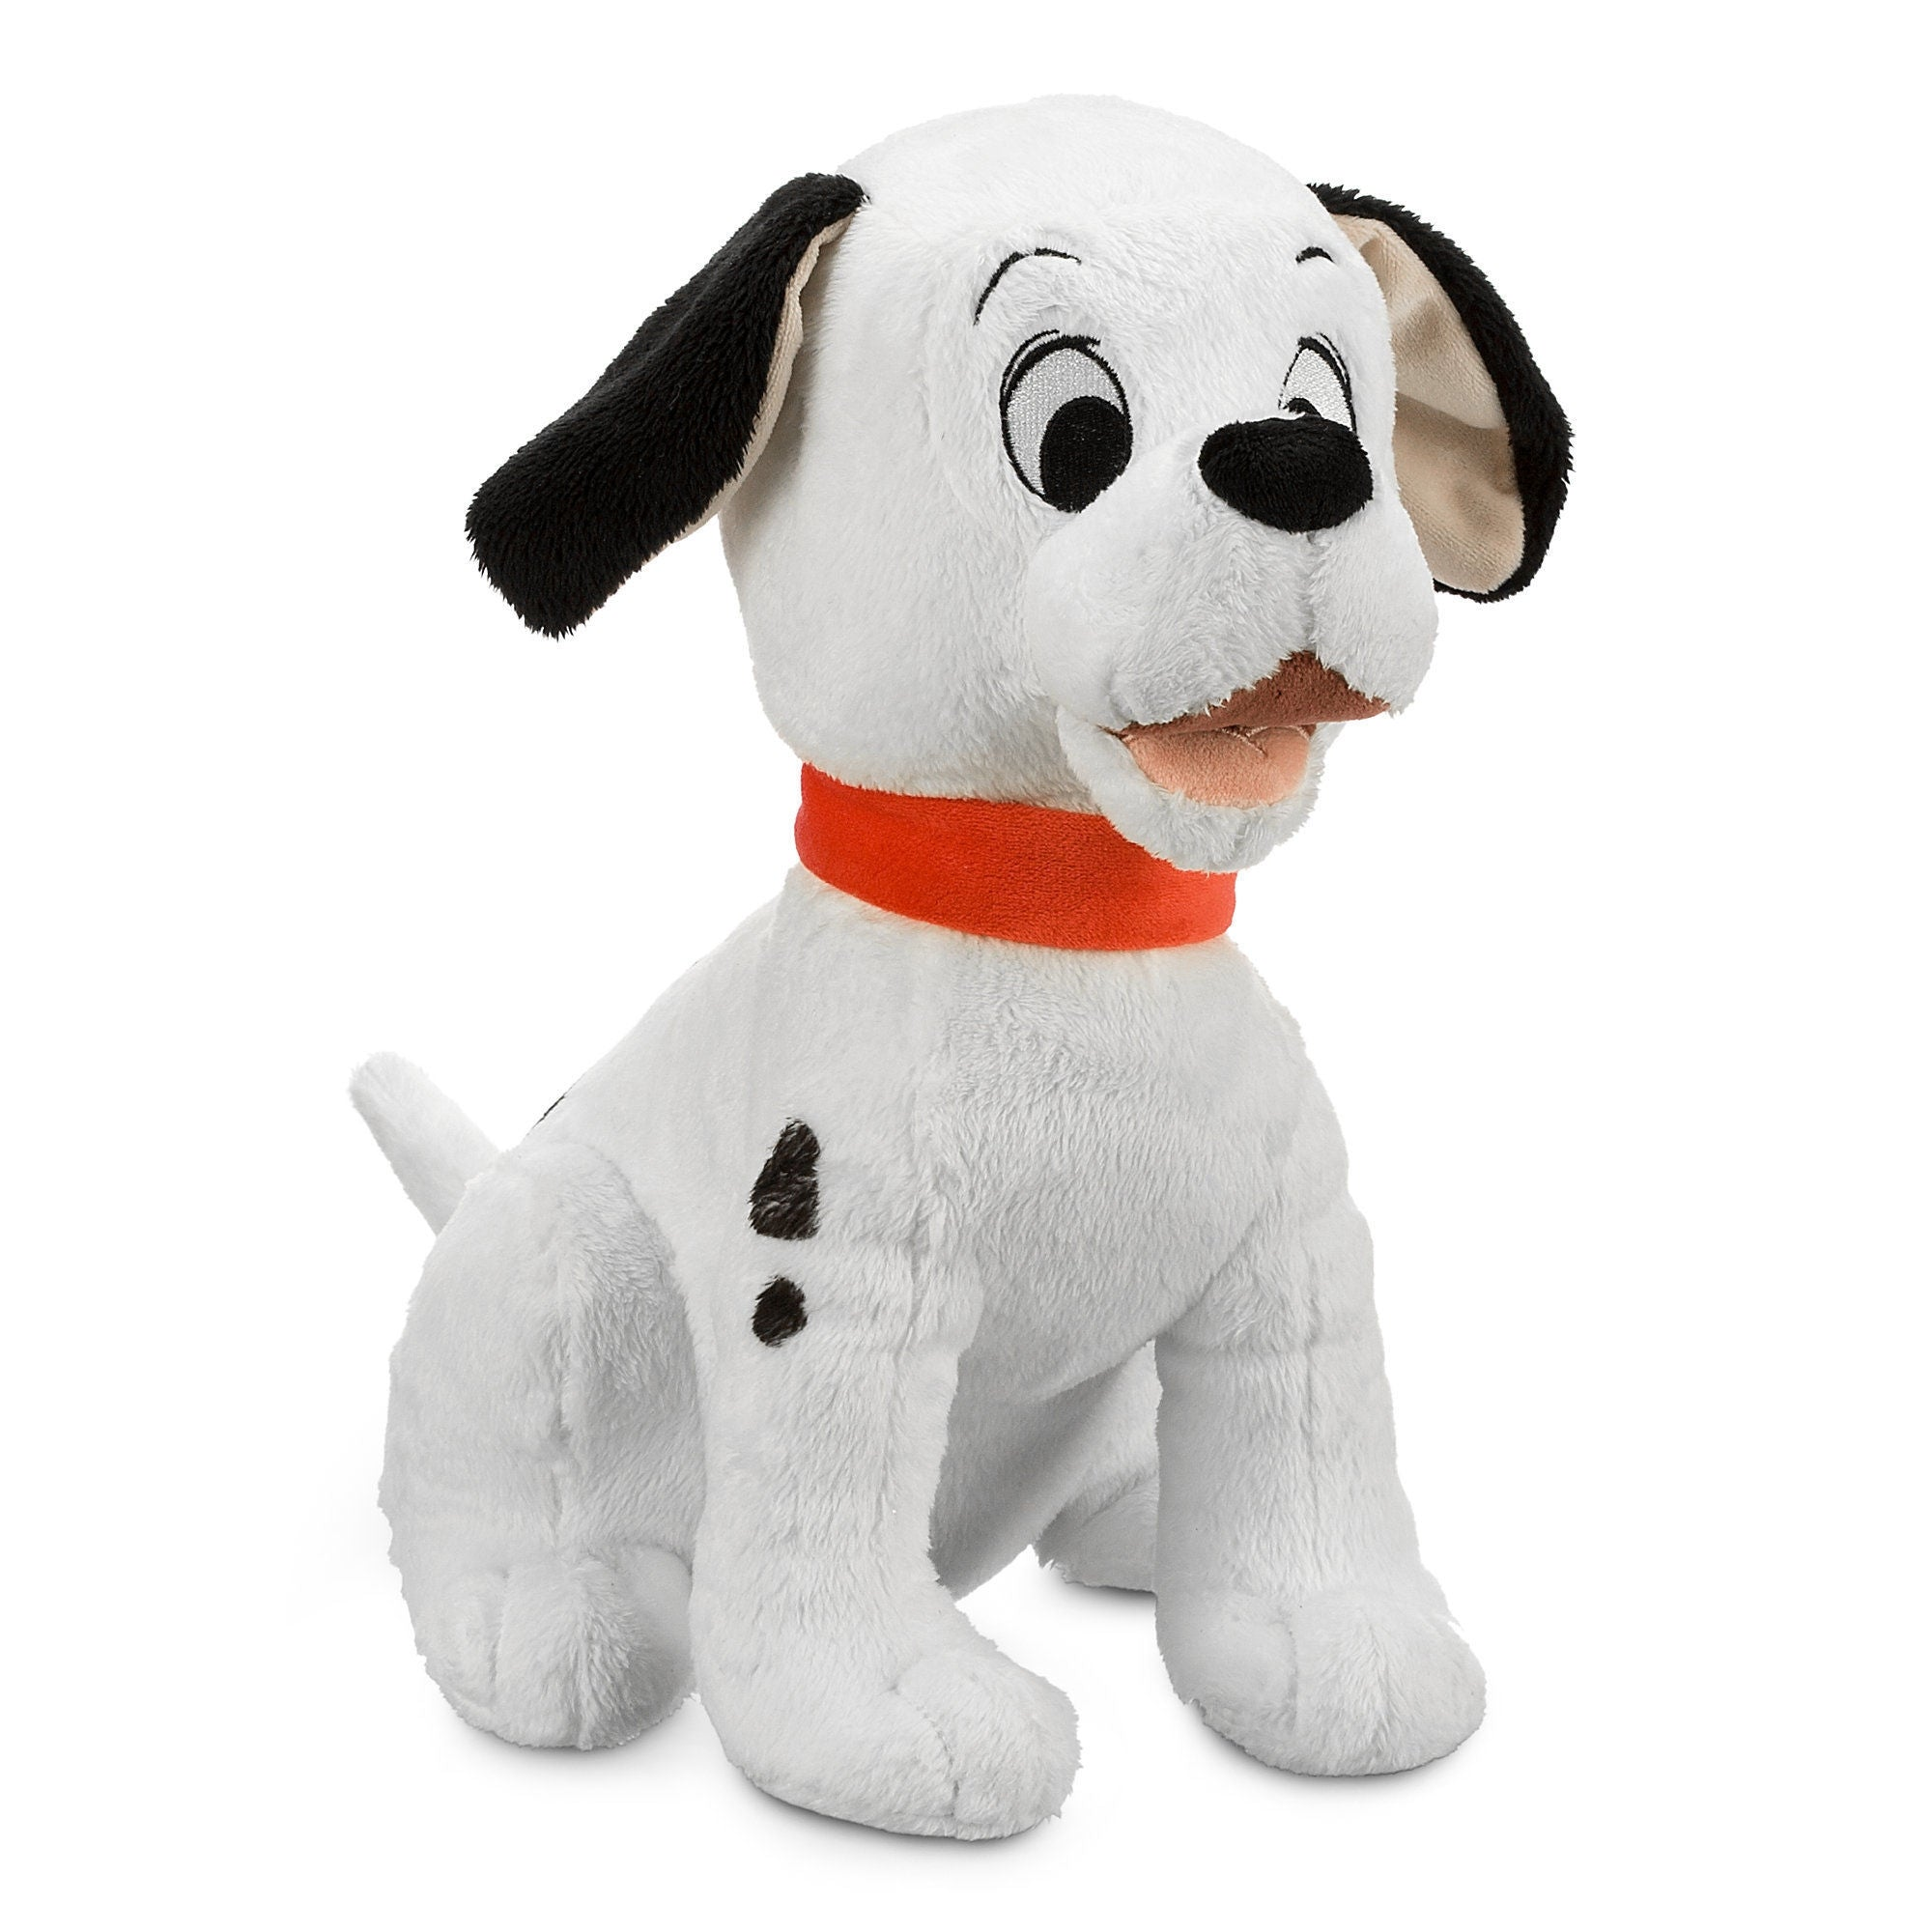 Lucky Plush - 101 Dalmatians - Large - 19.5 inch